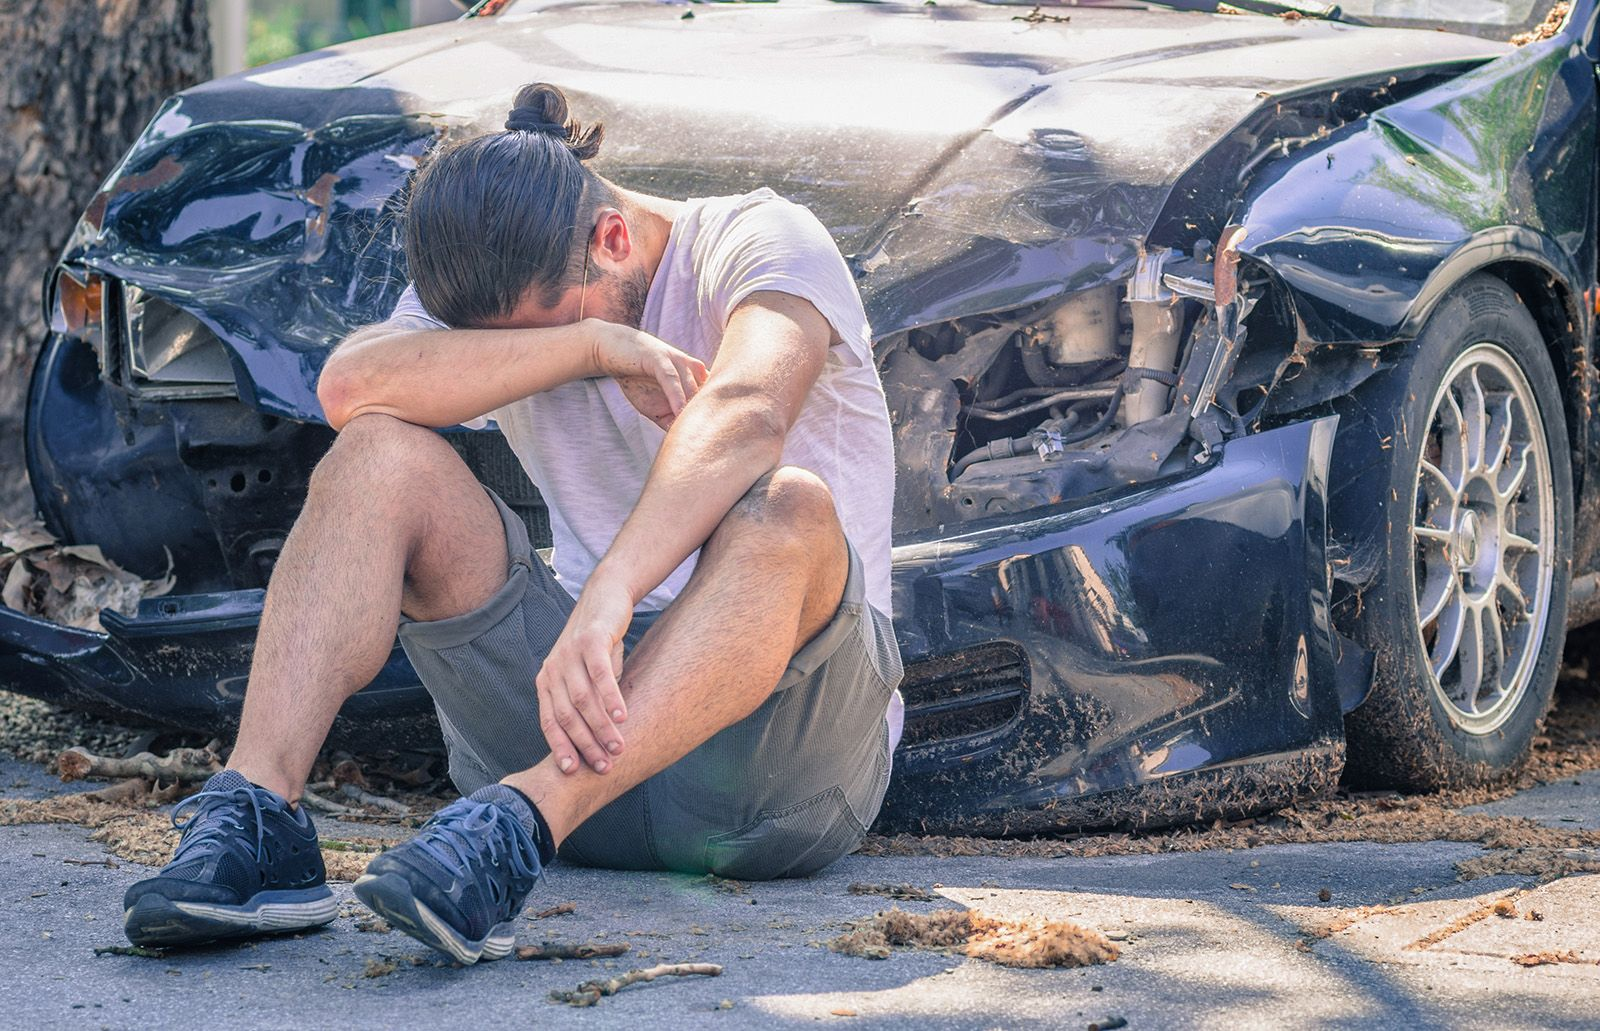 Upset man in front of wrecked car